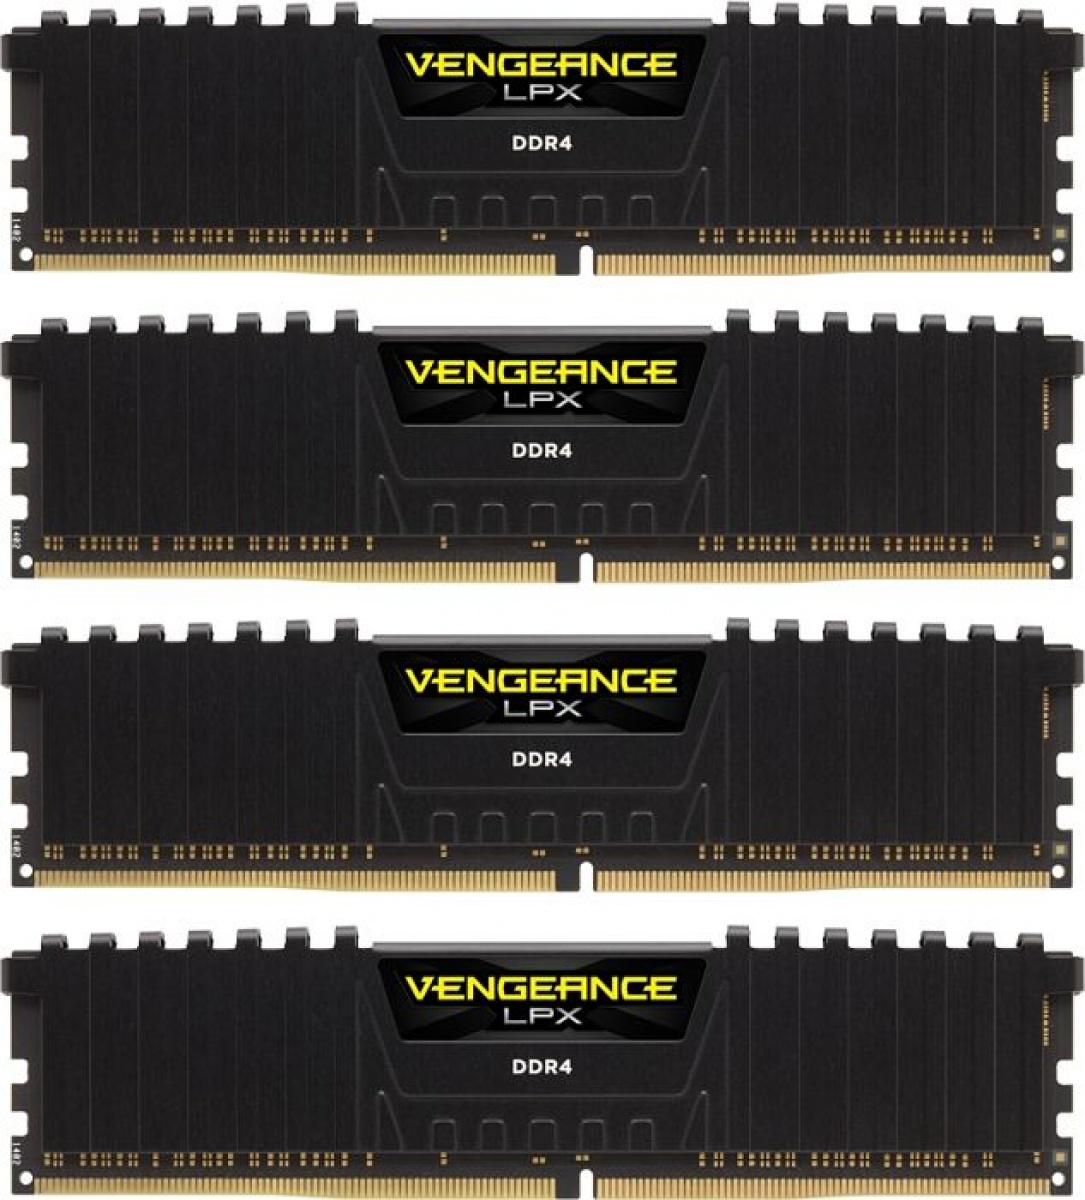 Memorie Vengeance LPX, DDR4, 4 x 4 GB, 3733 MHz, CL17, kit